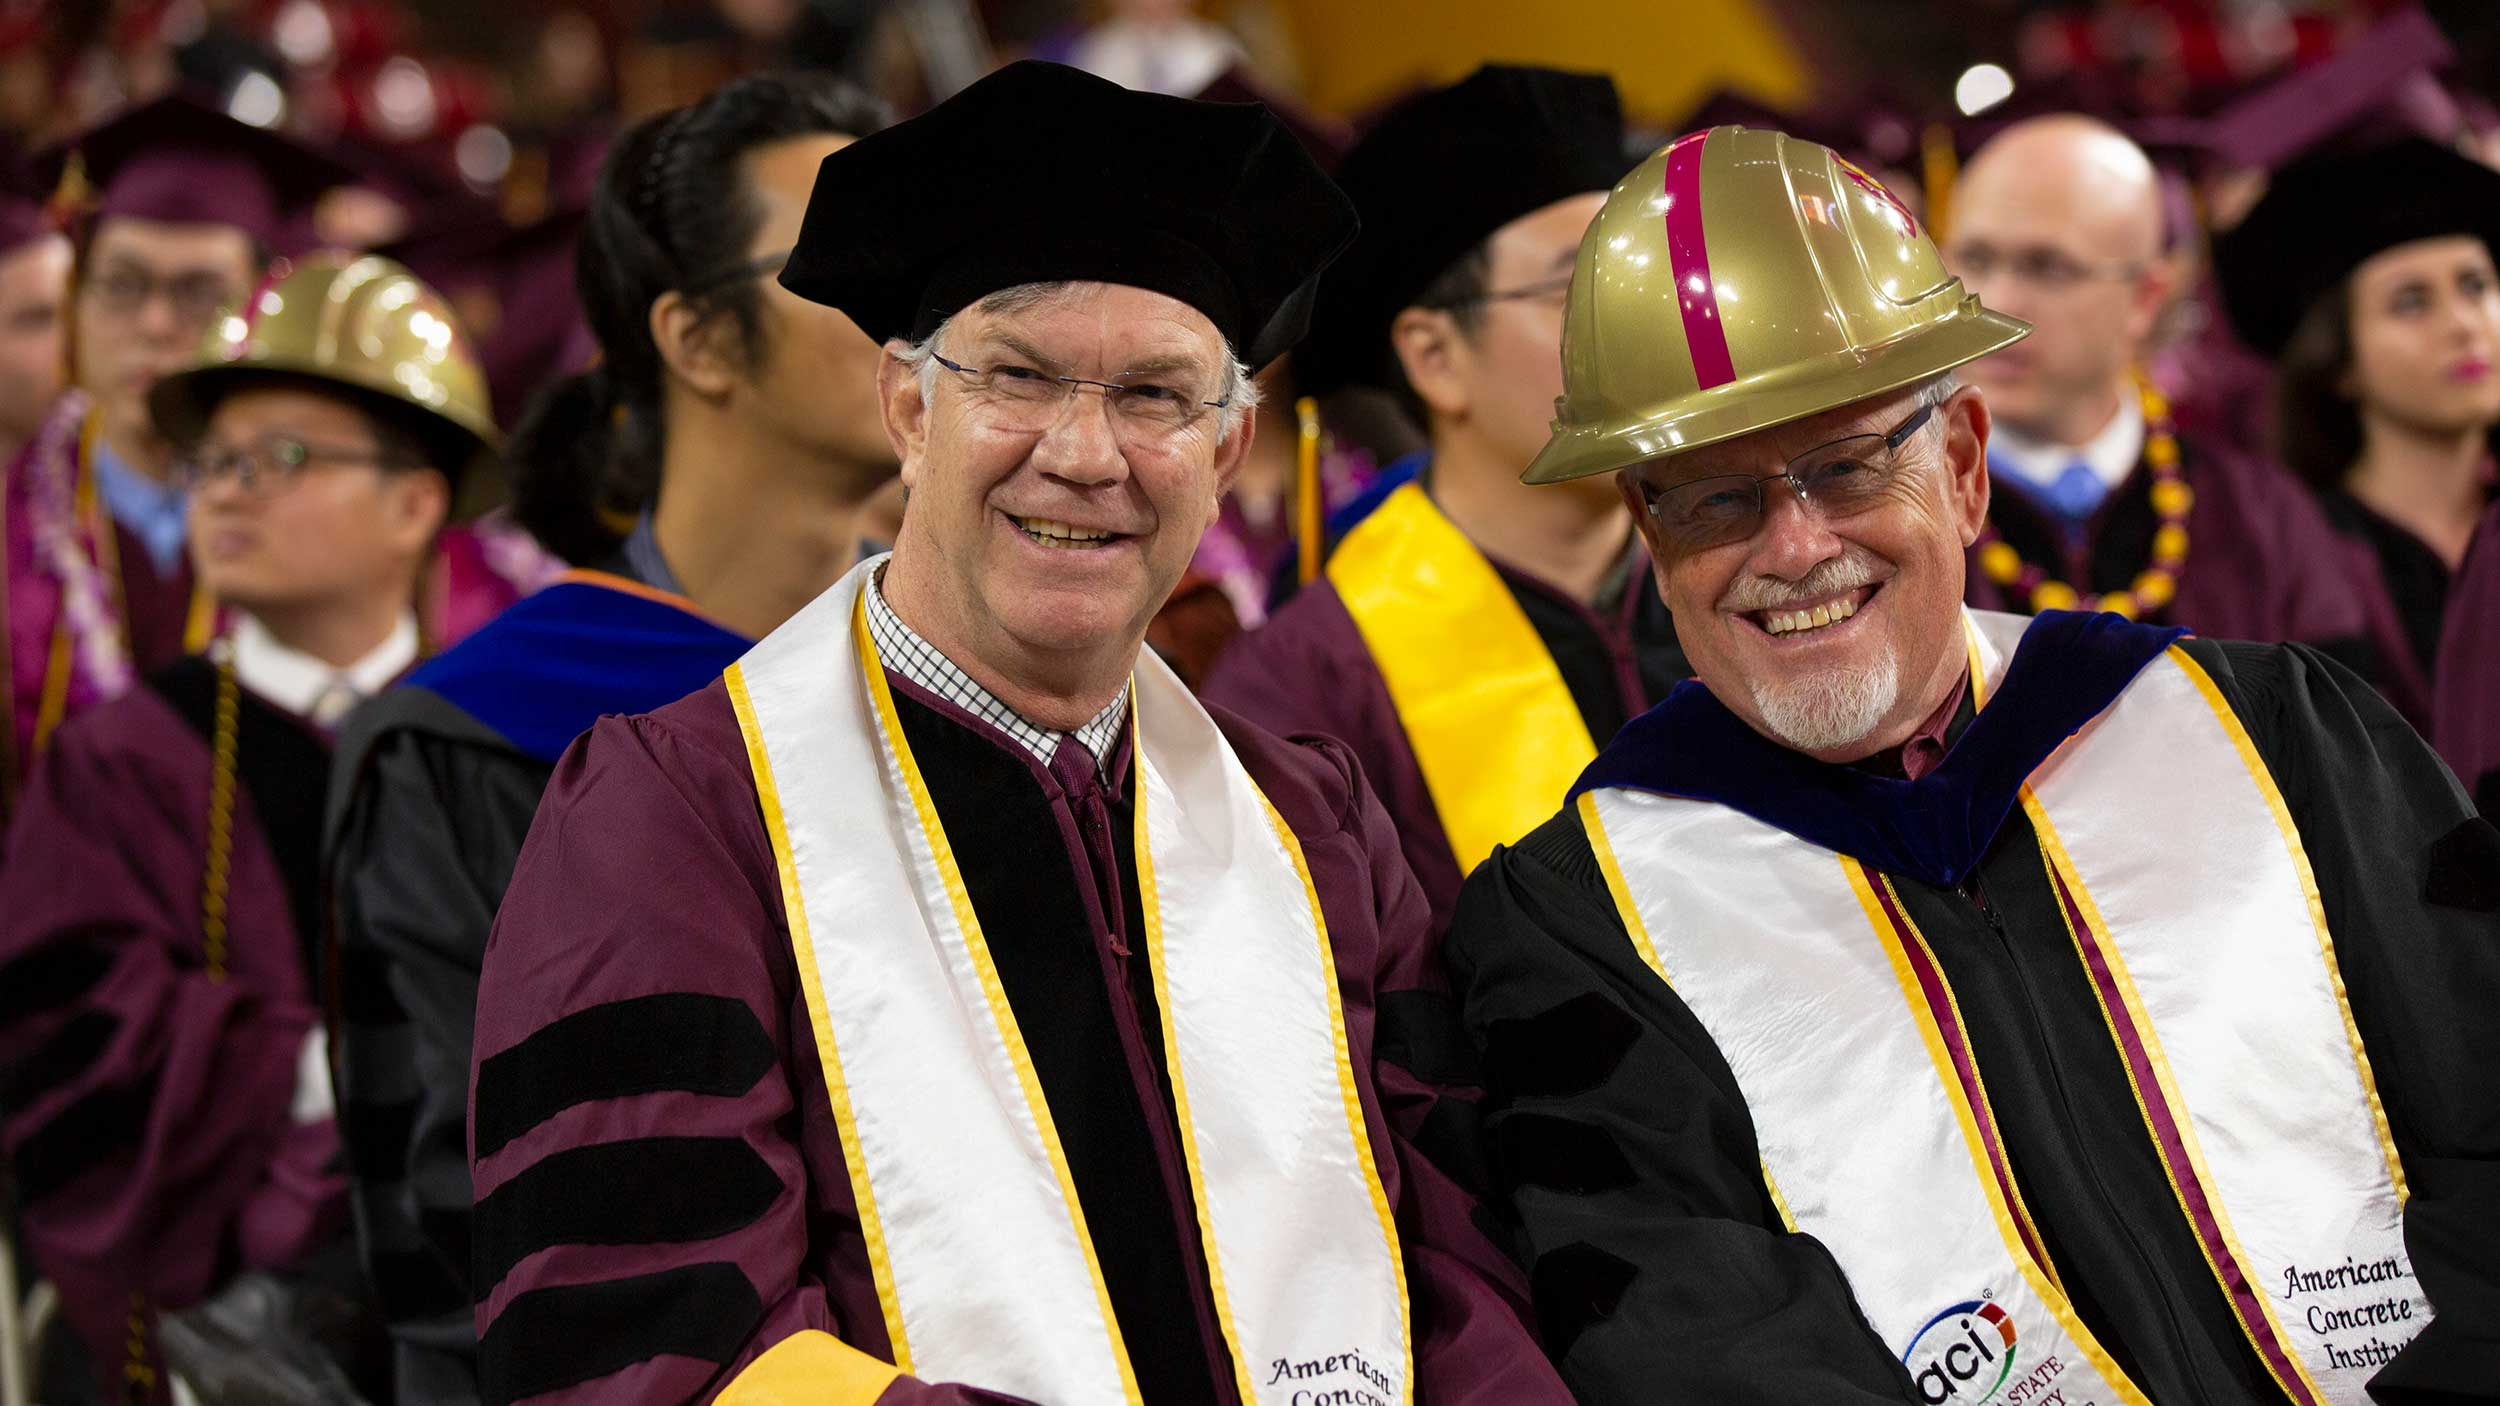 Richard Standage and Jim Ernzen smile for the camera at Convocation, dressed in their full regalia